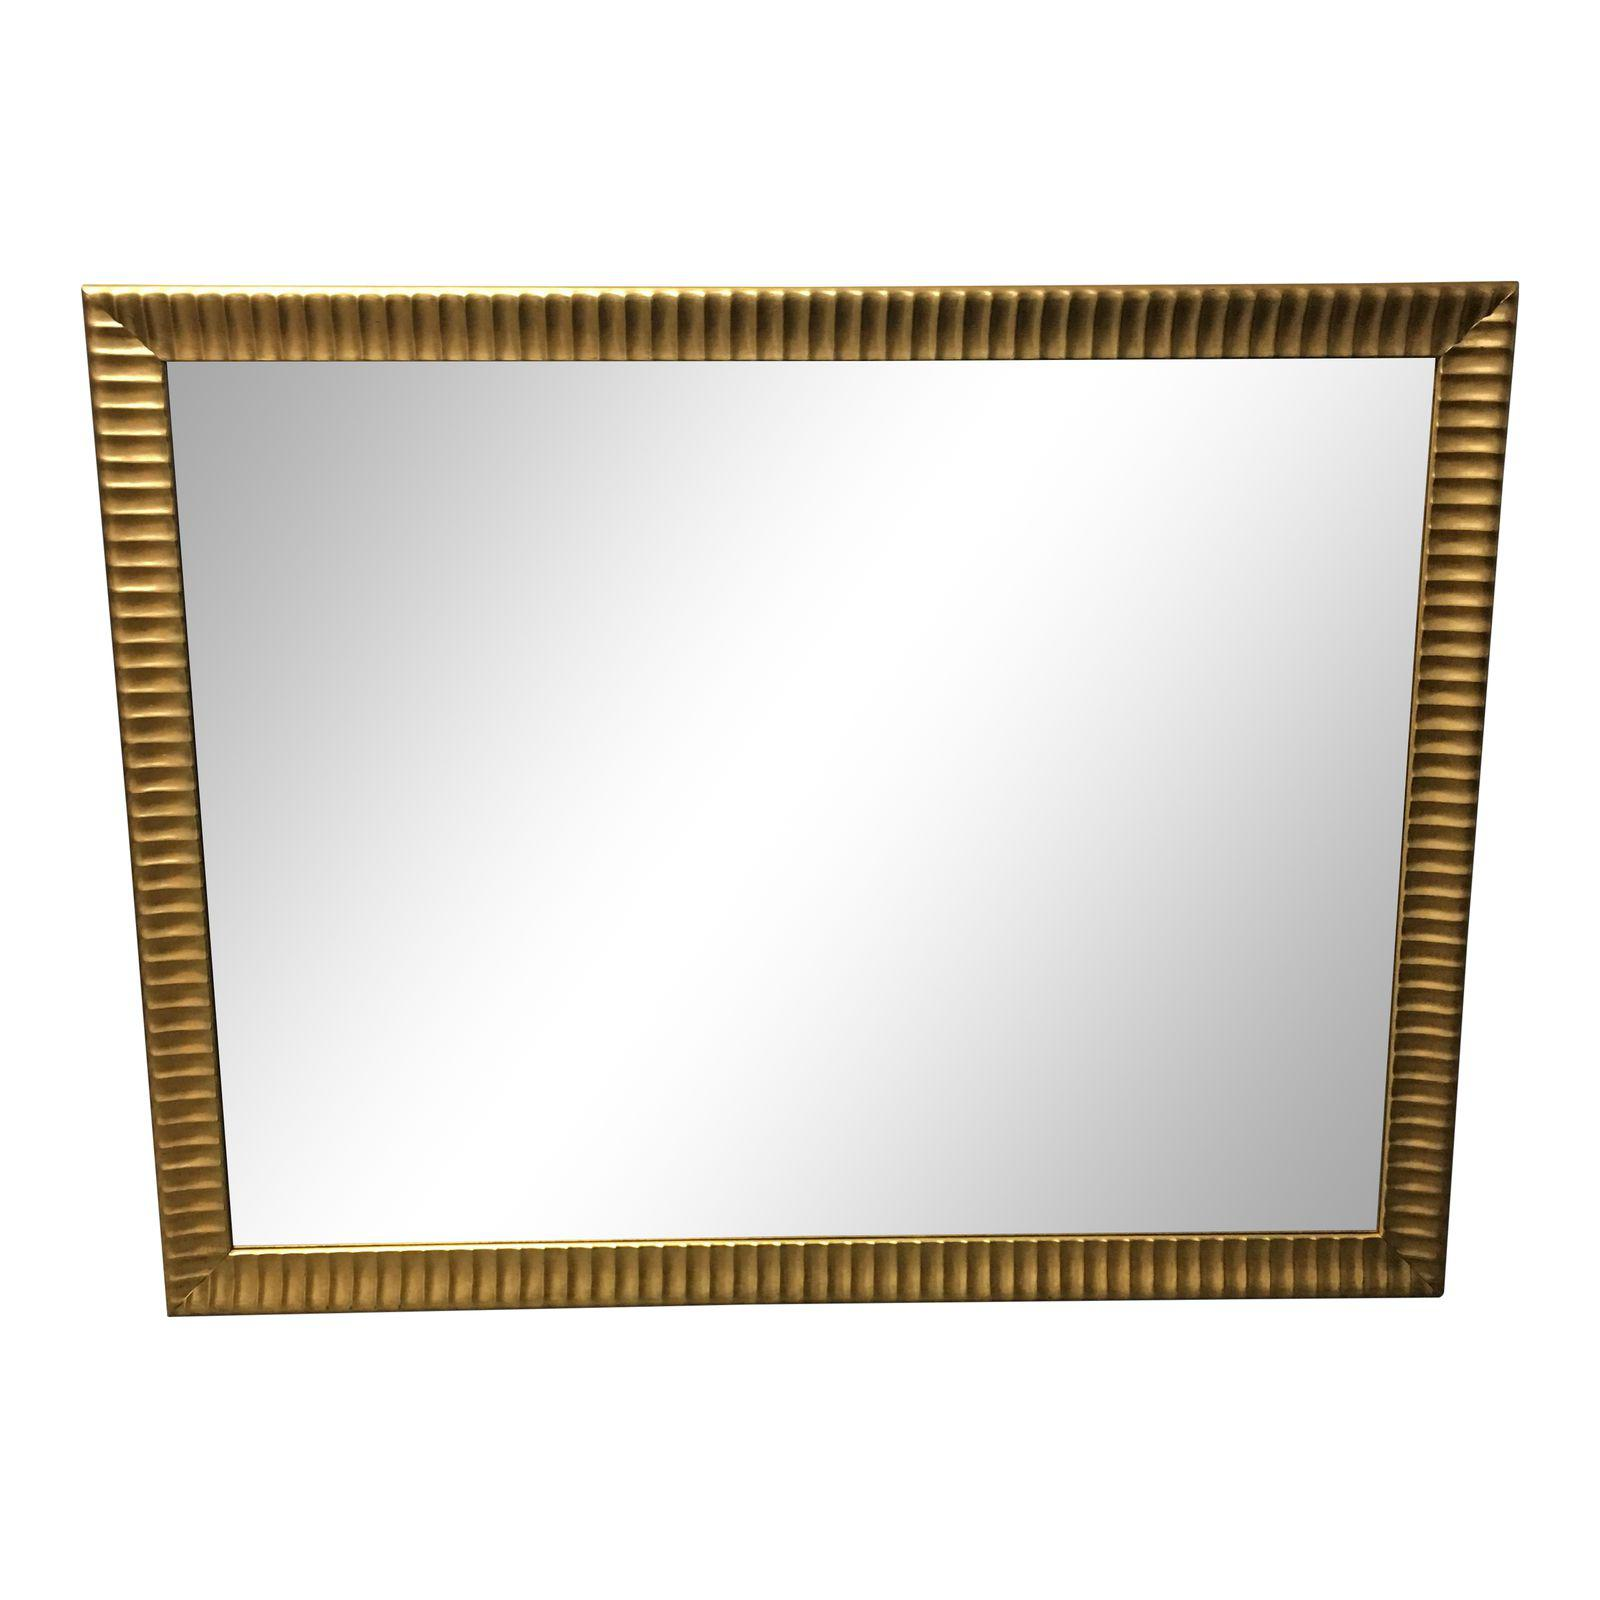 large-gold-framed-wall-mirror-0411 - Design Plus Gallery